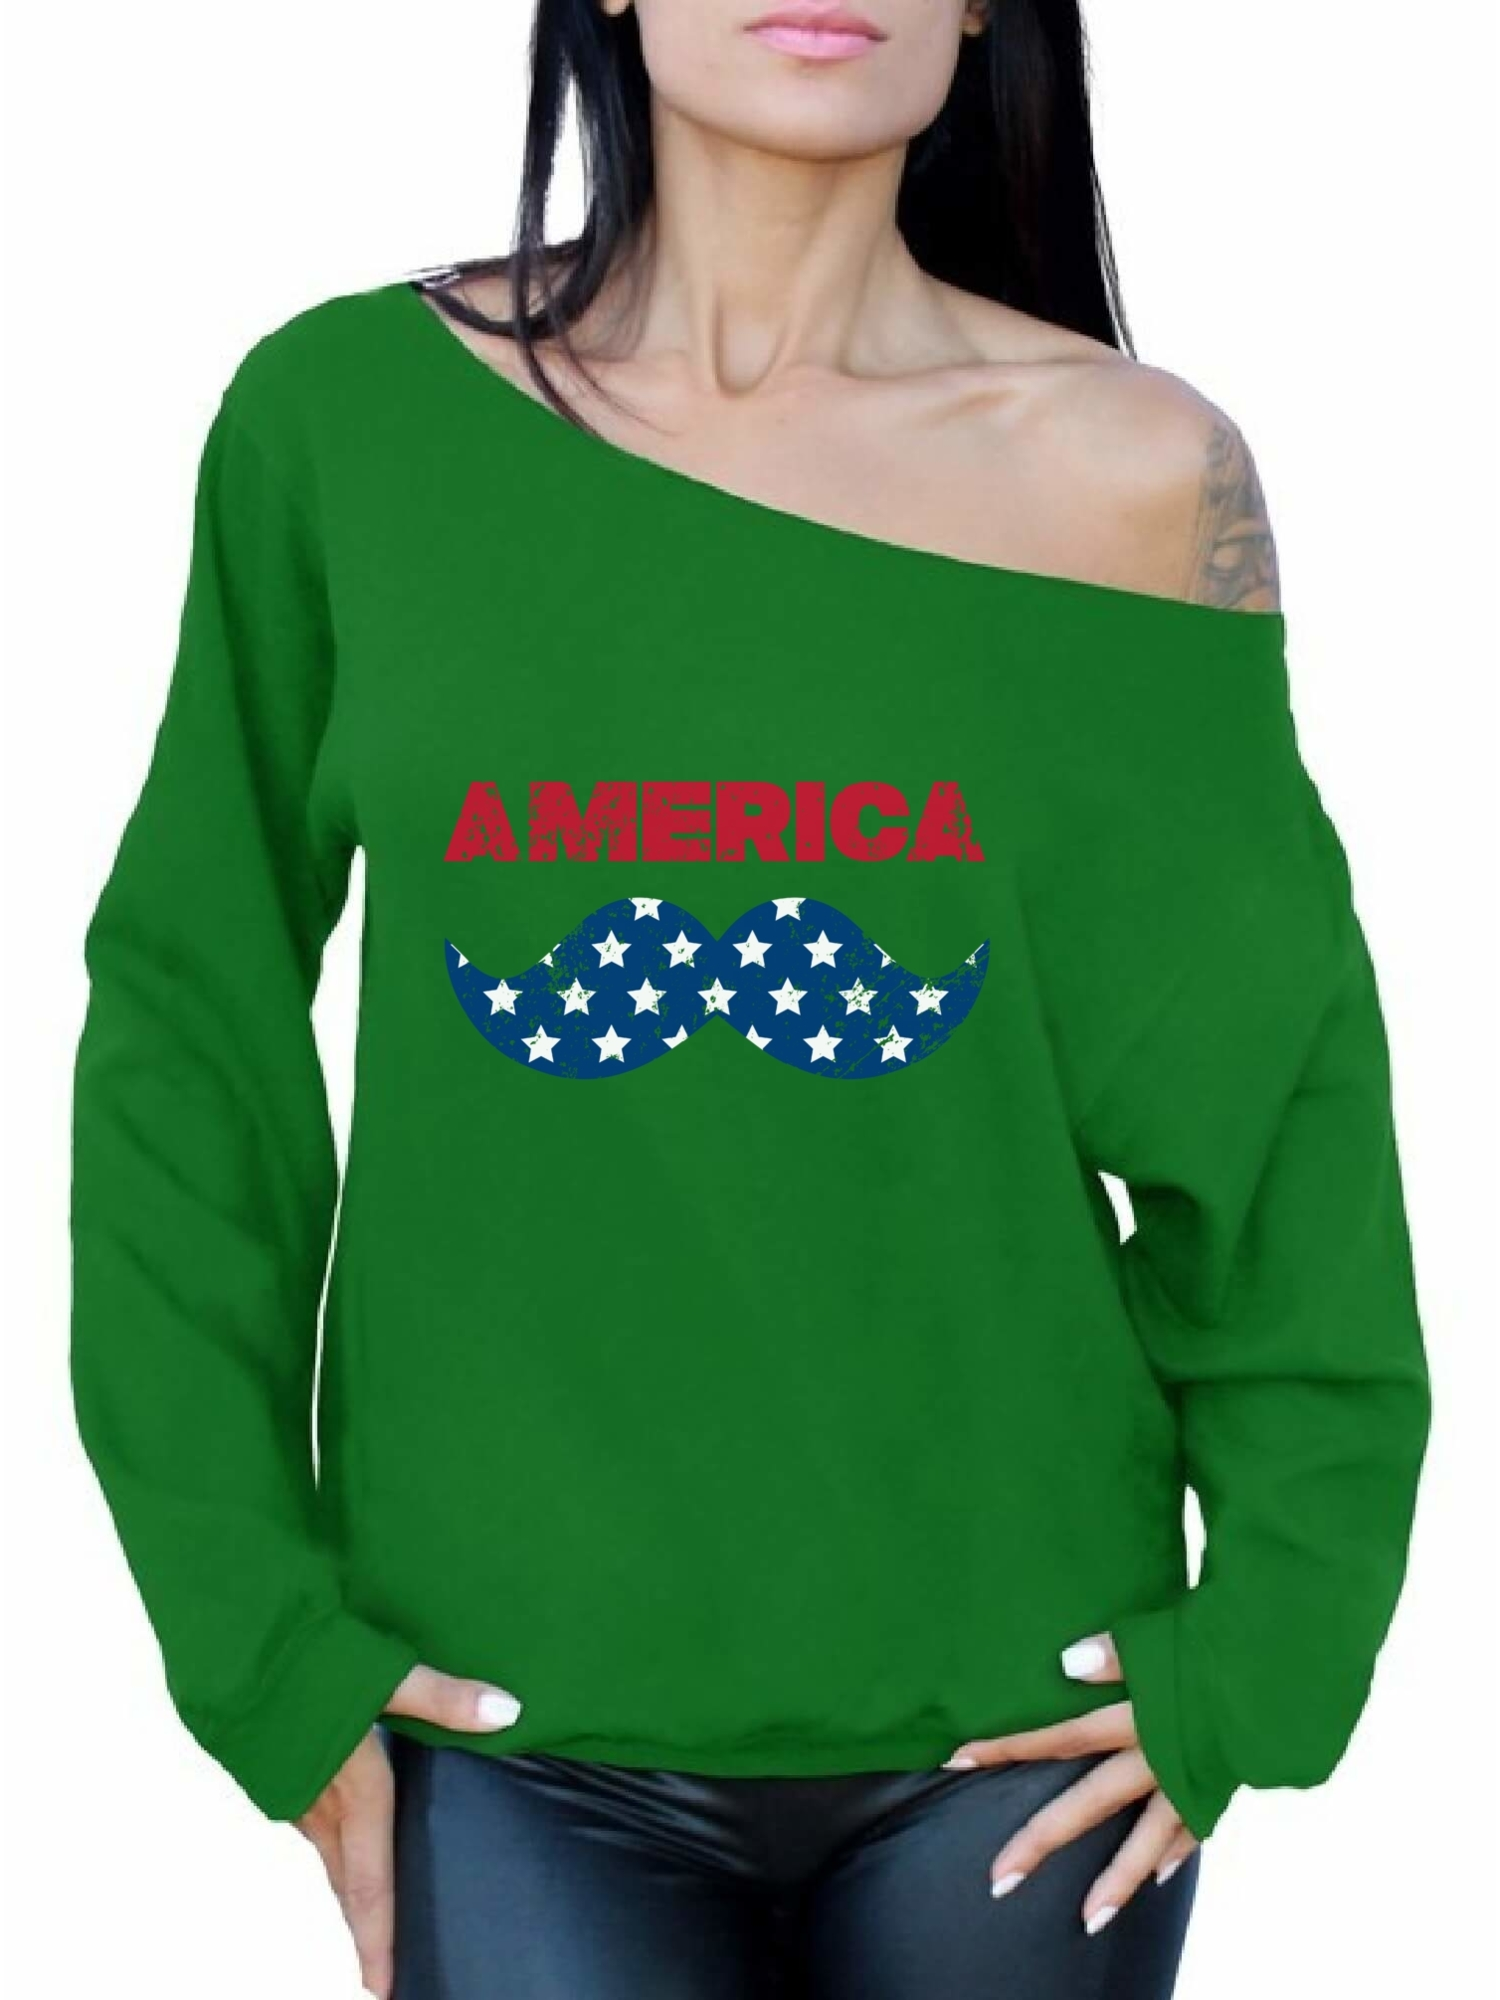 a2737a586f7c32 Awkward Styles Women s America Patriotic Mustache Graphic Off ...